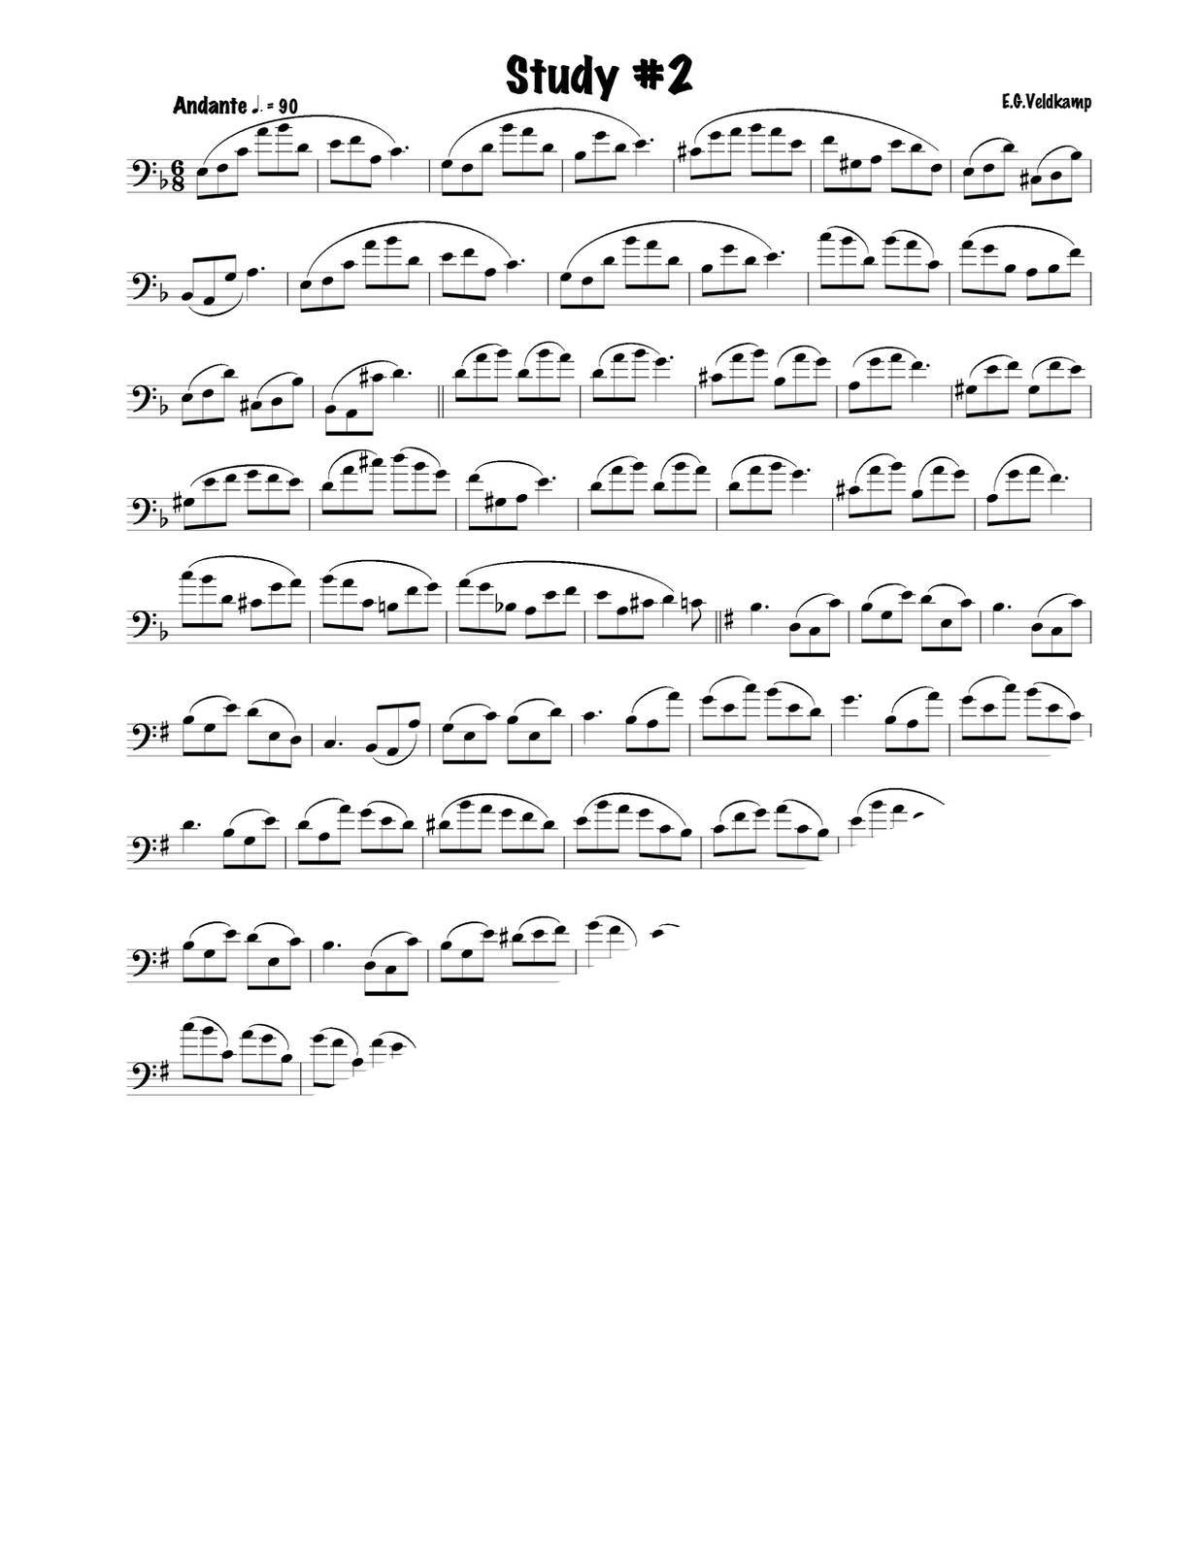 Veldkamp 16 Advanced Lip Slur Studies (Bass Clef)-p05